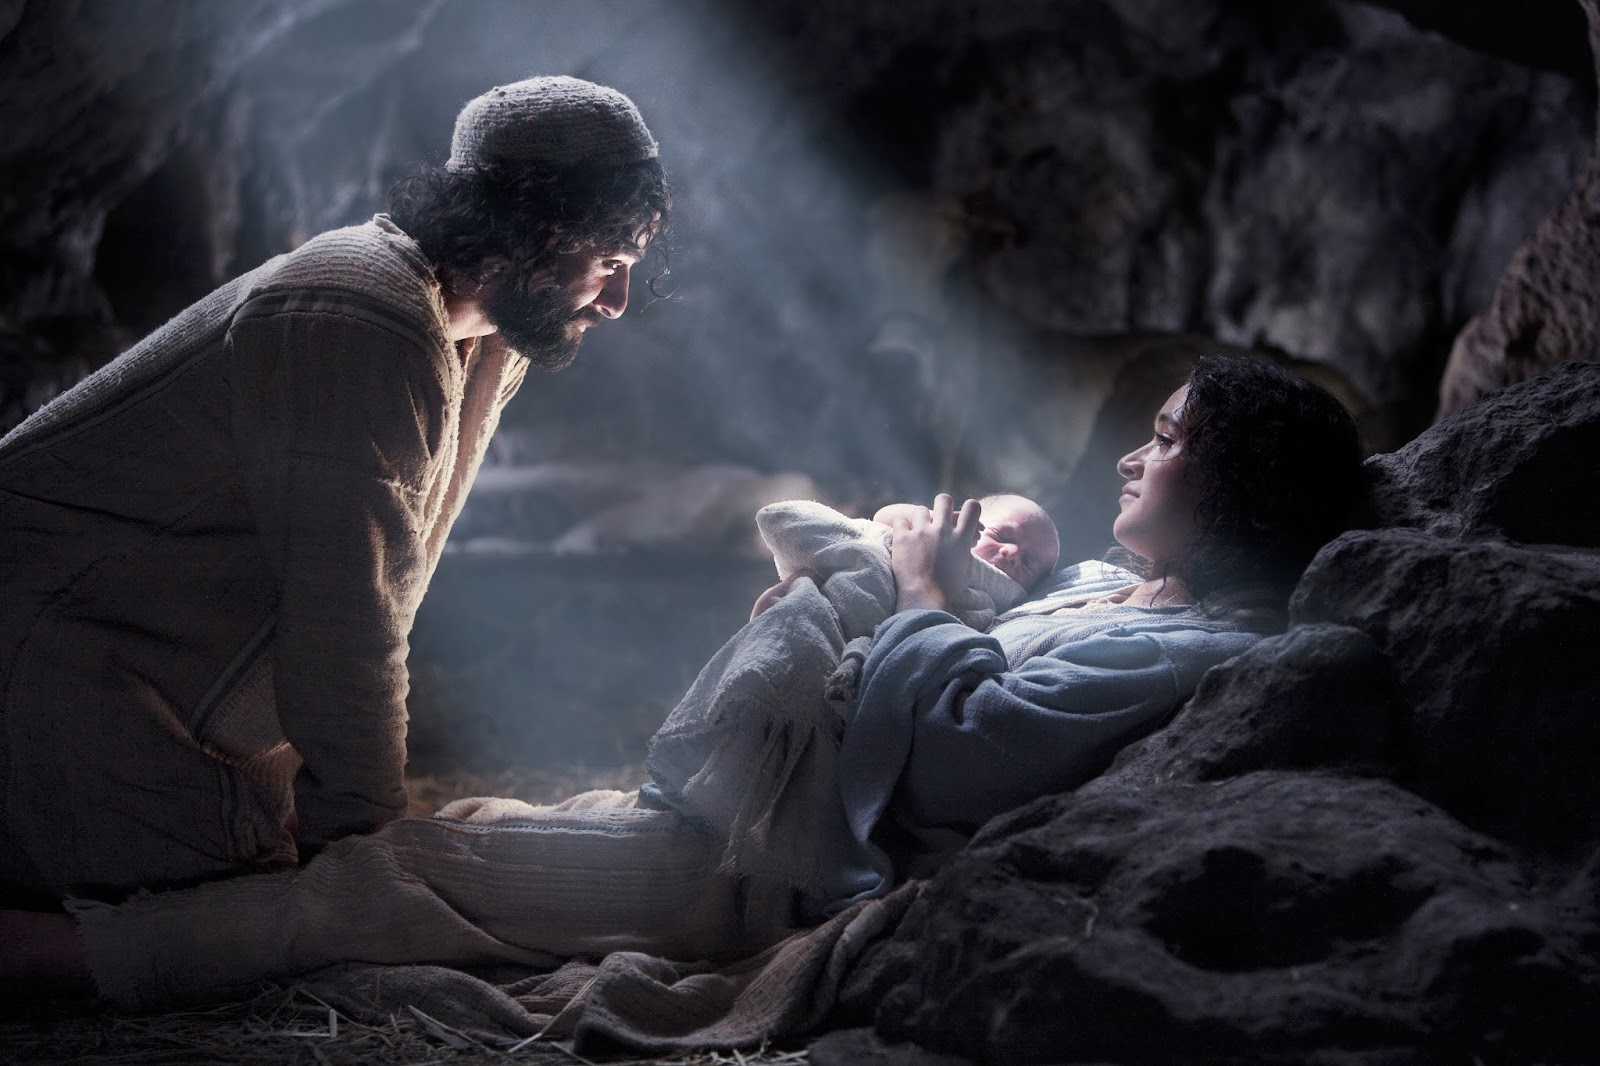 Know What You Believe: A New Look At The Christmas Story